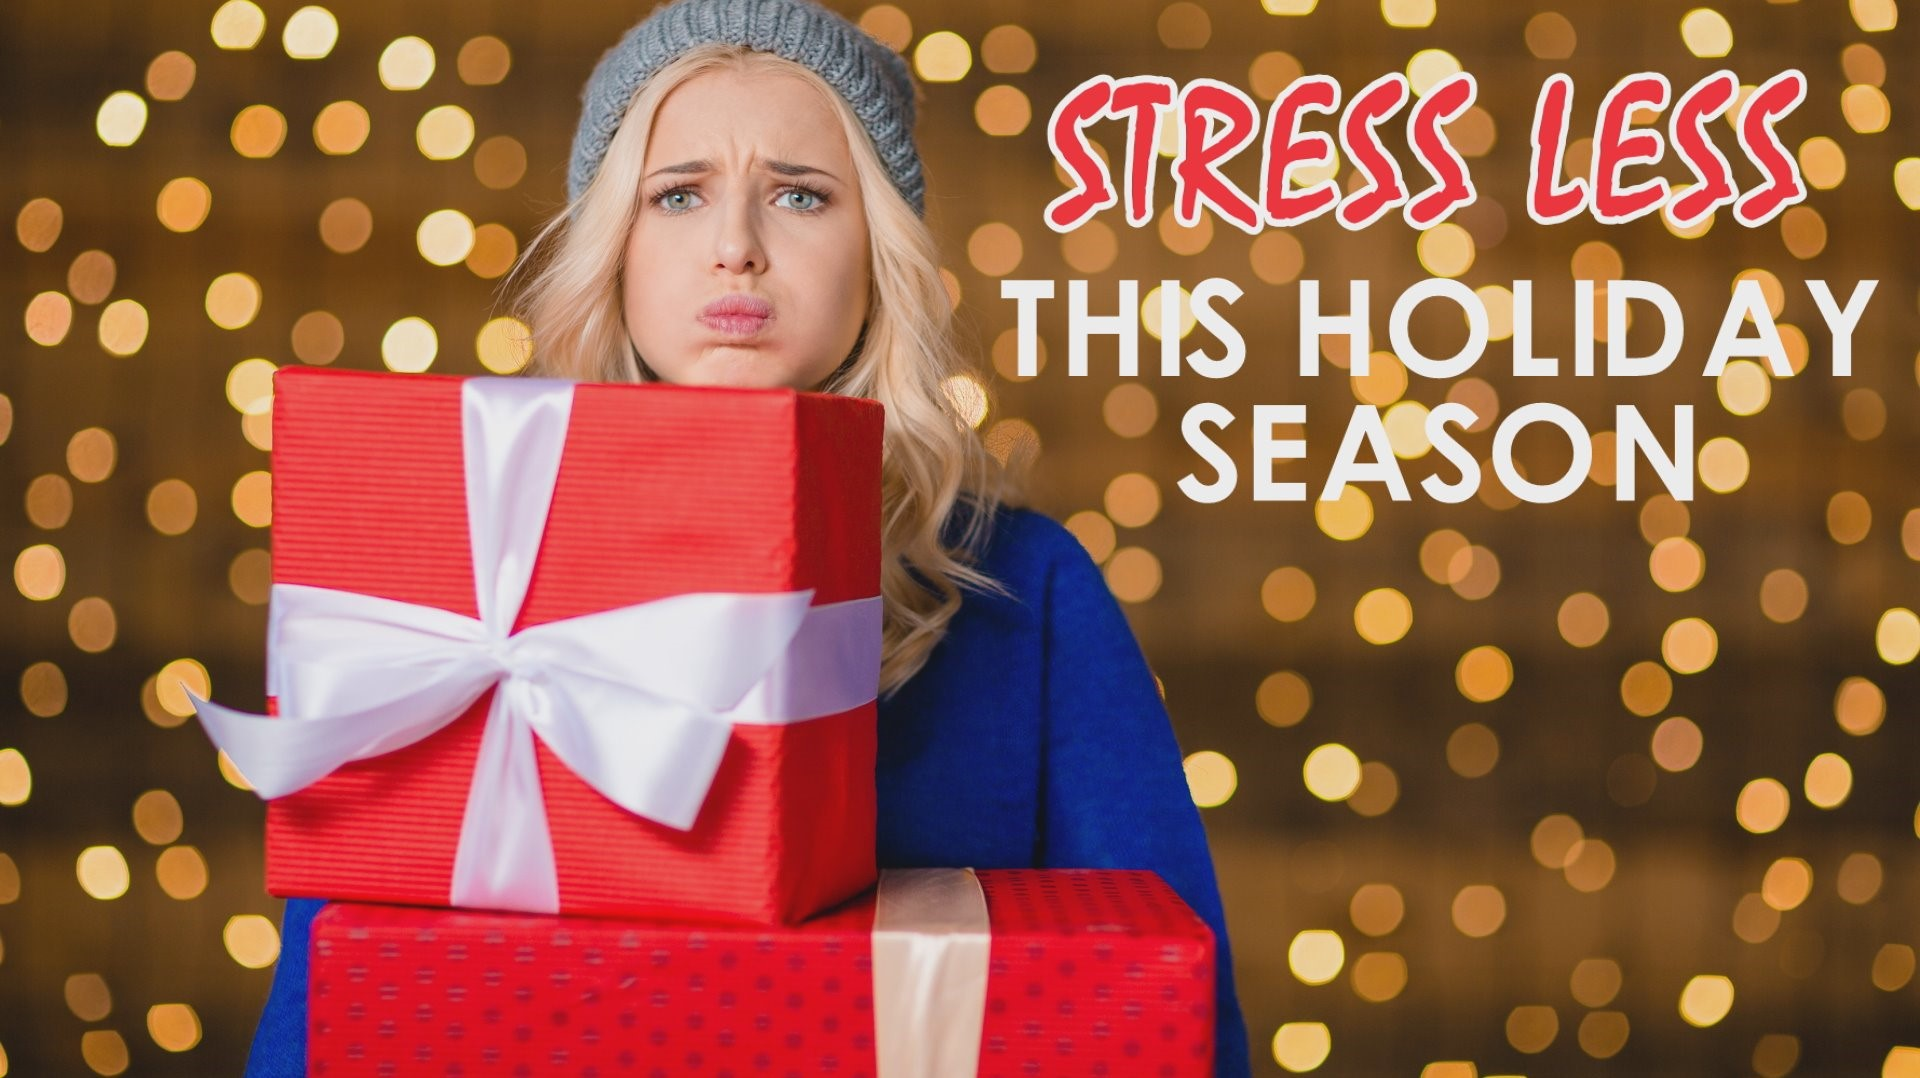 Stress-less, tips to boost mental health this holiday season